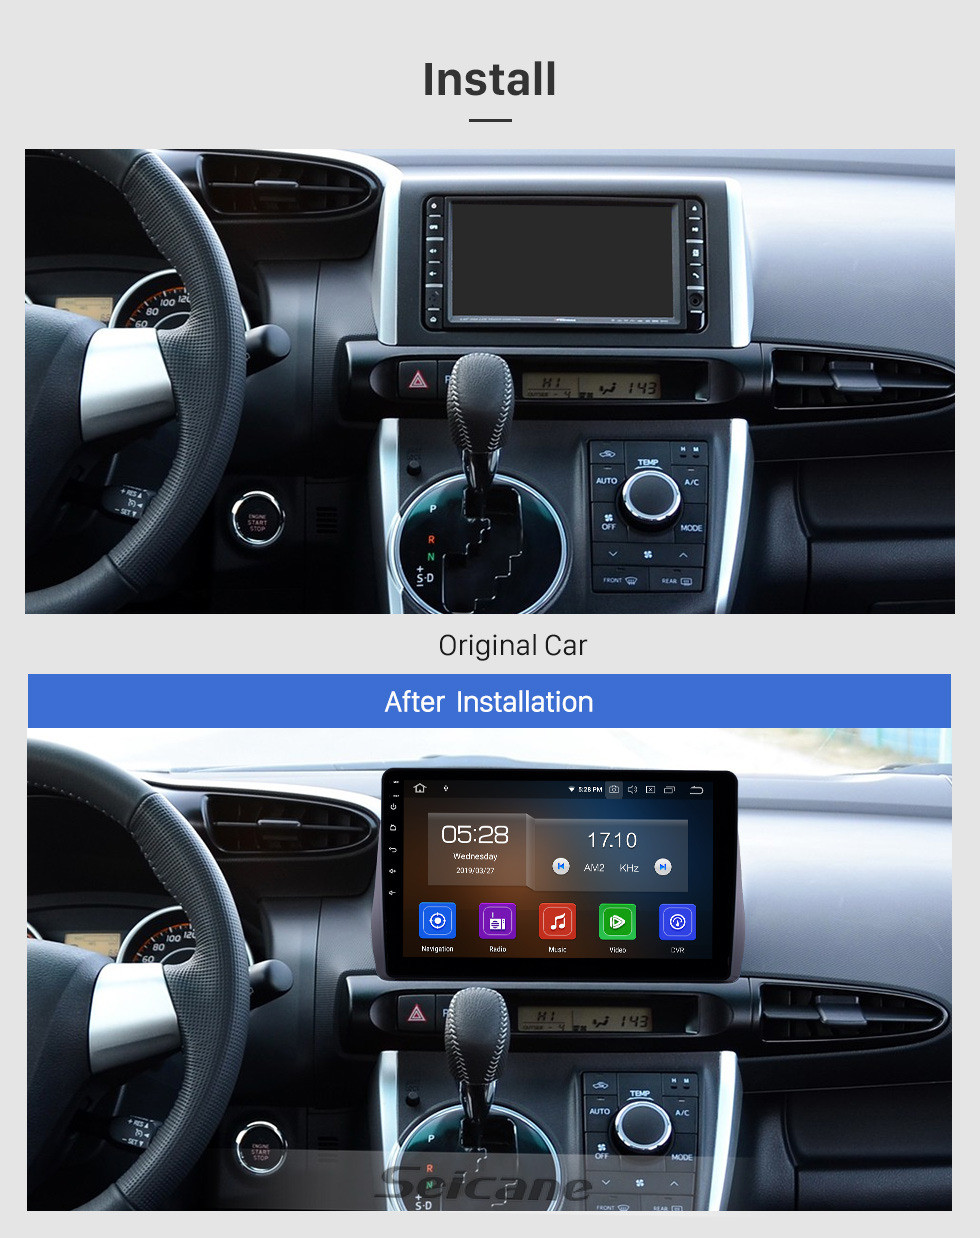 Seicane 10.1 inch Android 10.0 Radio for 2009-2012 Toyota Wish Bluetooth HD Touchscreen GPS Navigation Carplay USB support TPMS DAB+